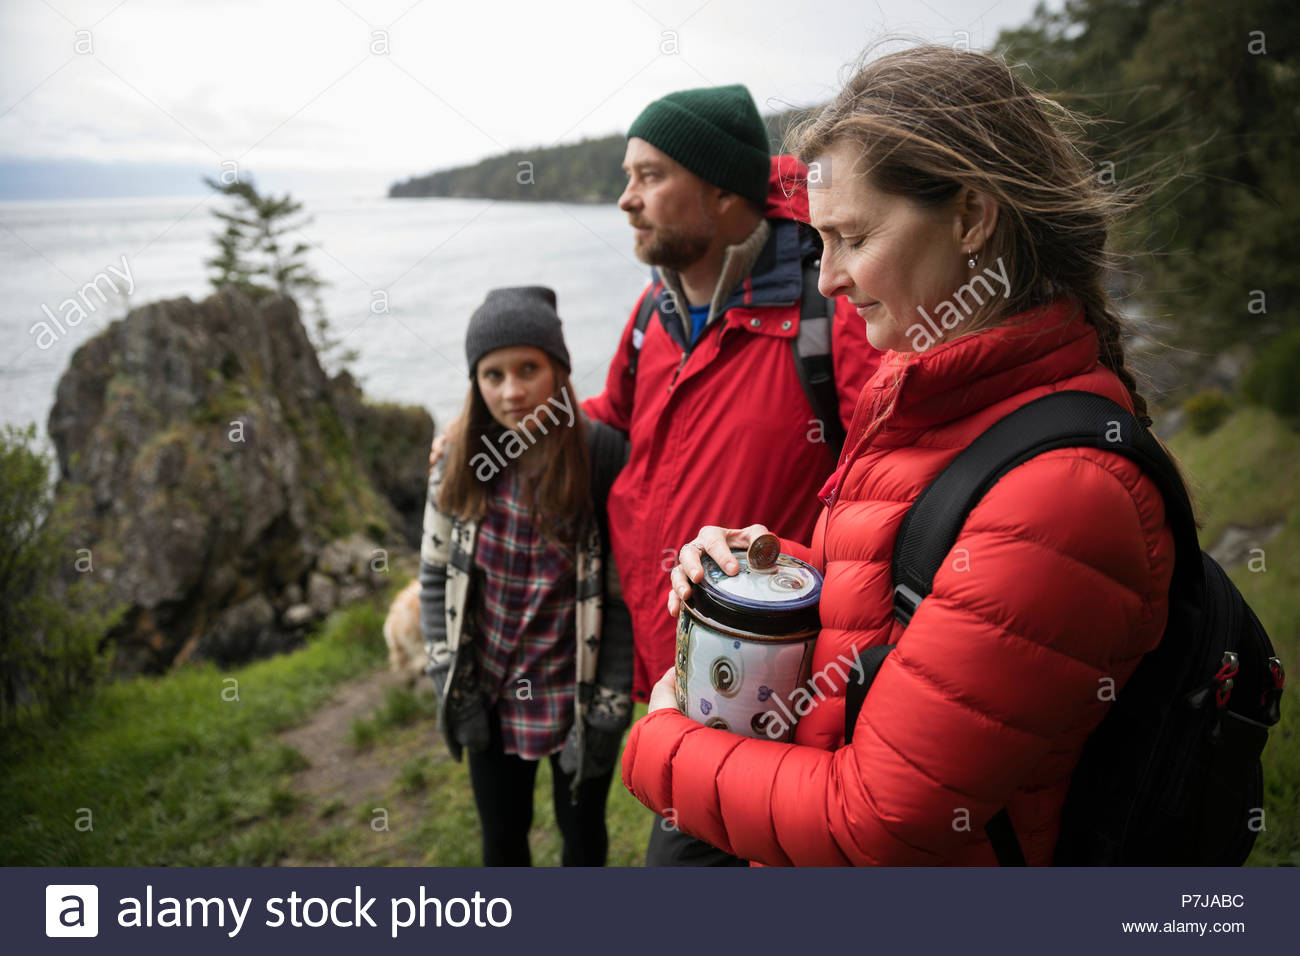 Family with urn spreading ashes on cliff overlooking ocean - Stock Image